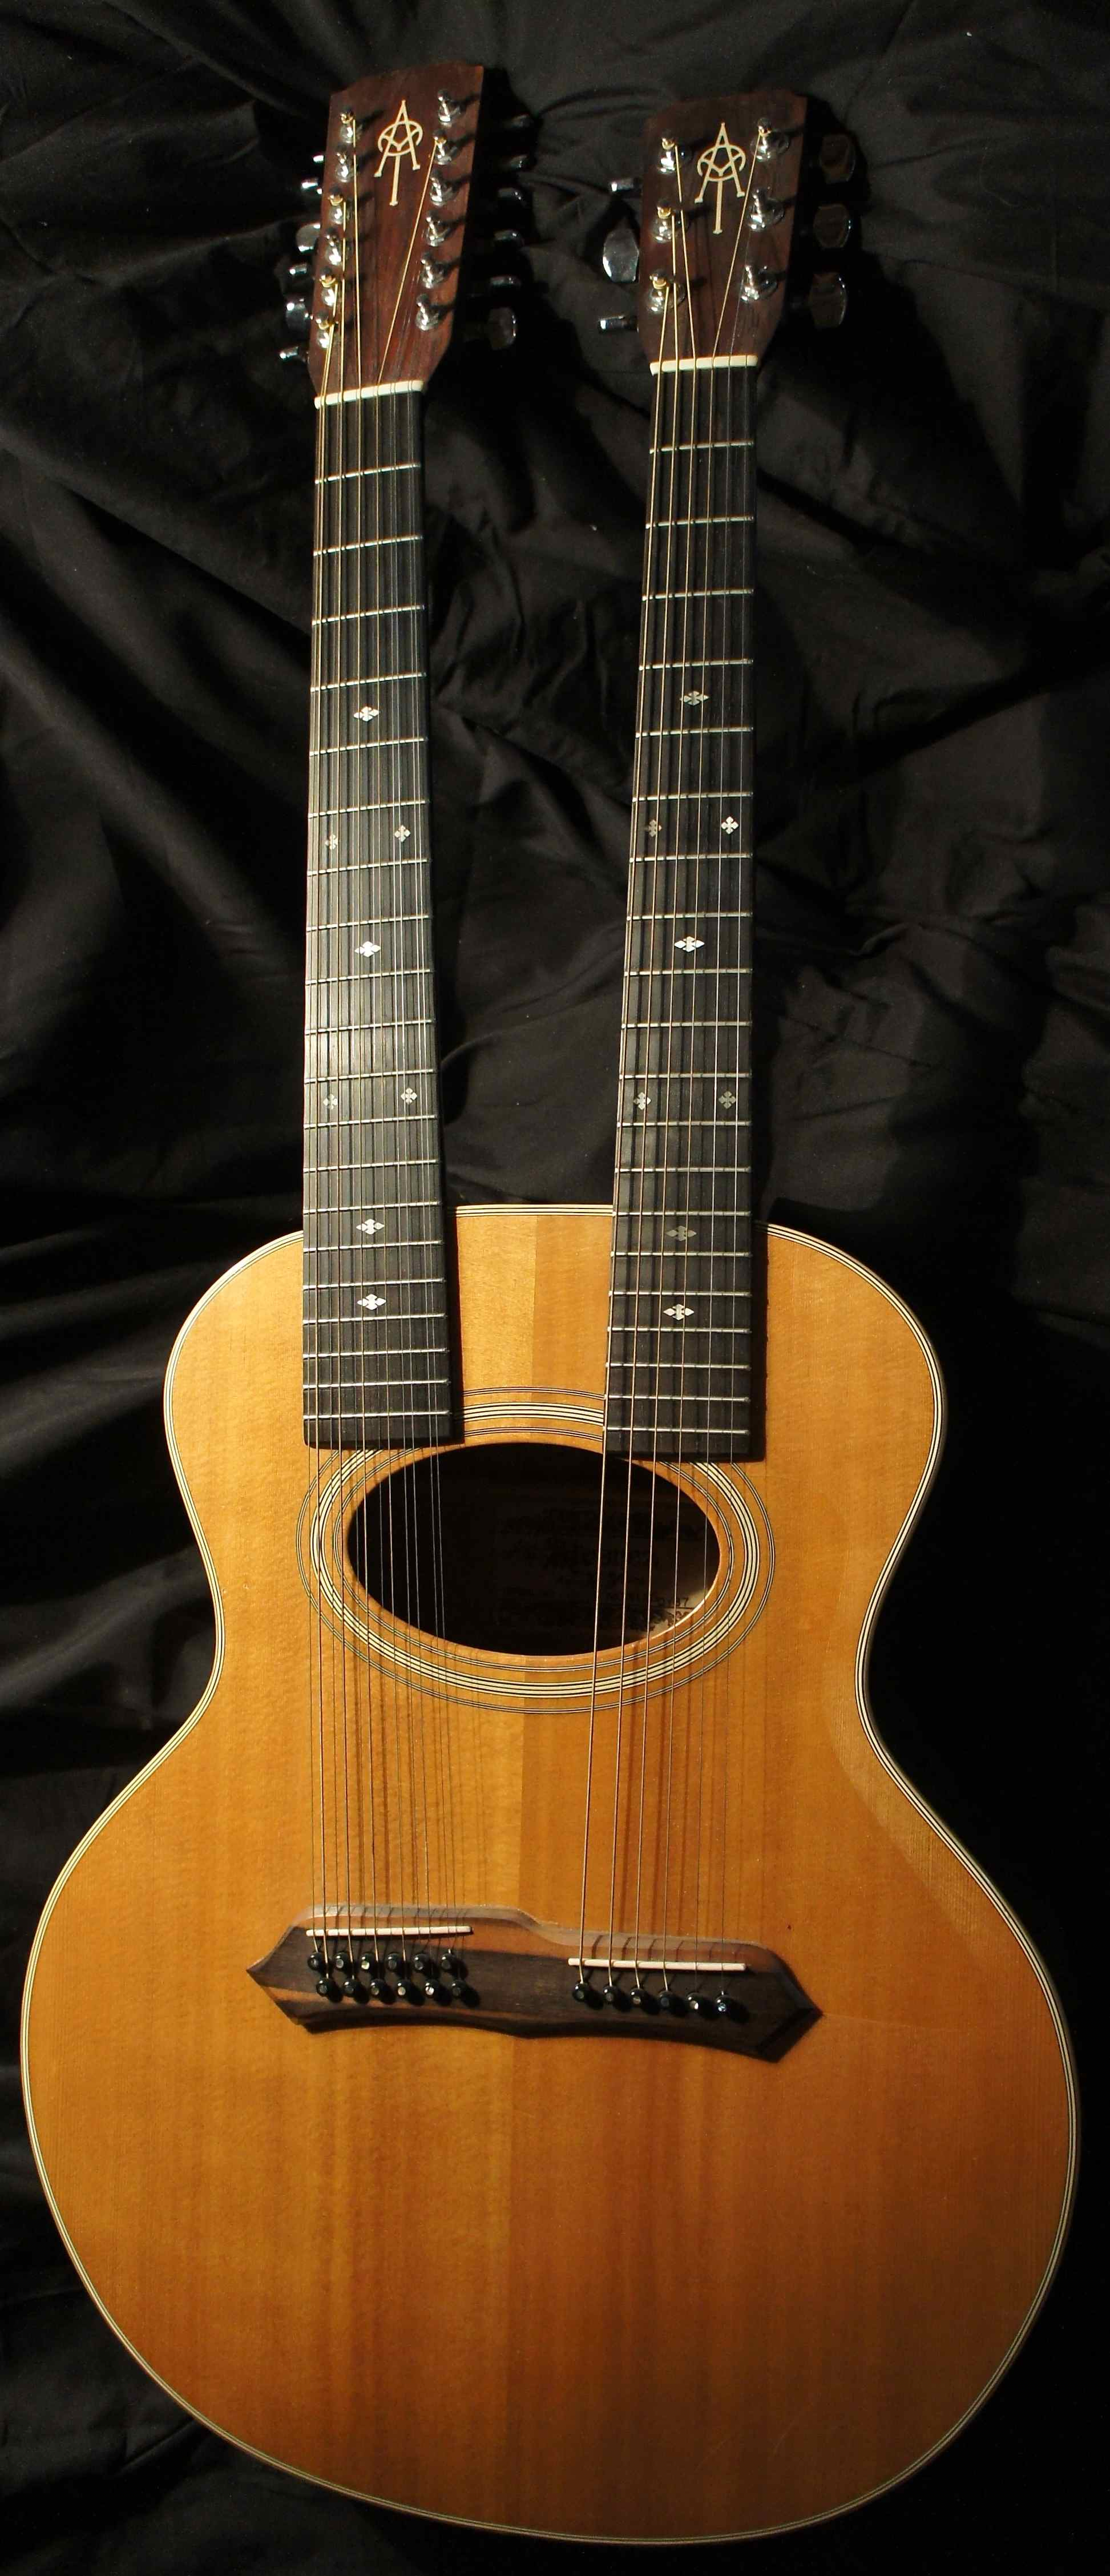 Alvarez Guitar Serial Numbers http://www.tuneyoursound.com/collection/alvarez-double-neck-acoustic-guitar-dy-87-1987-trevor-rabin-yes